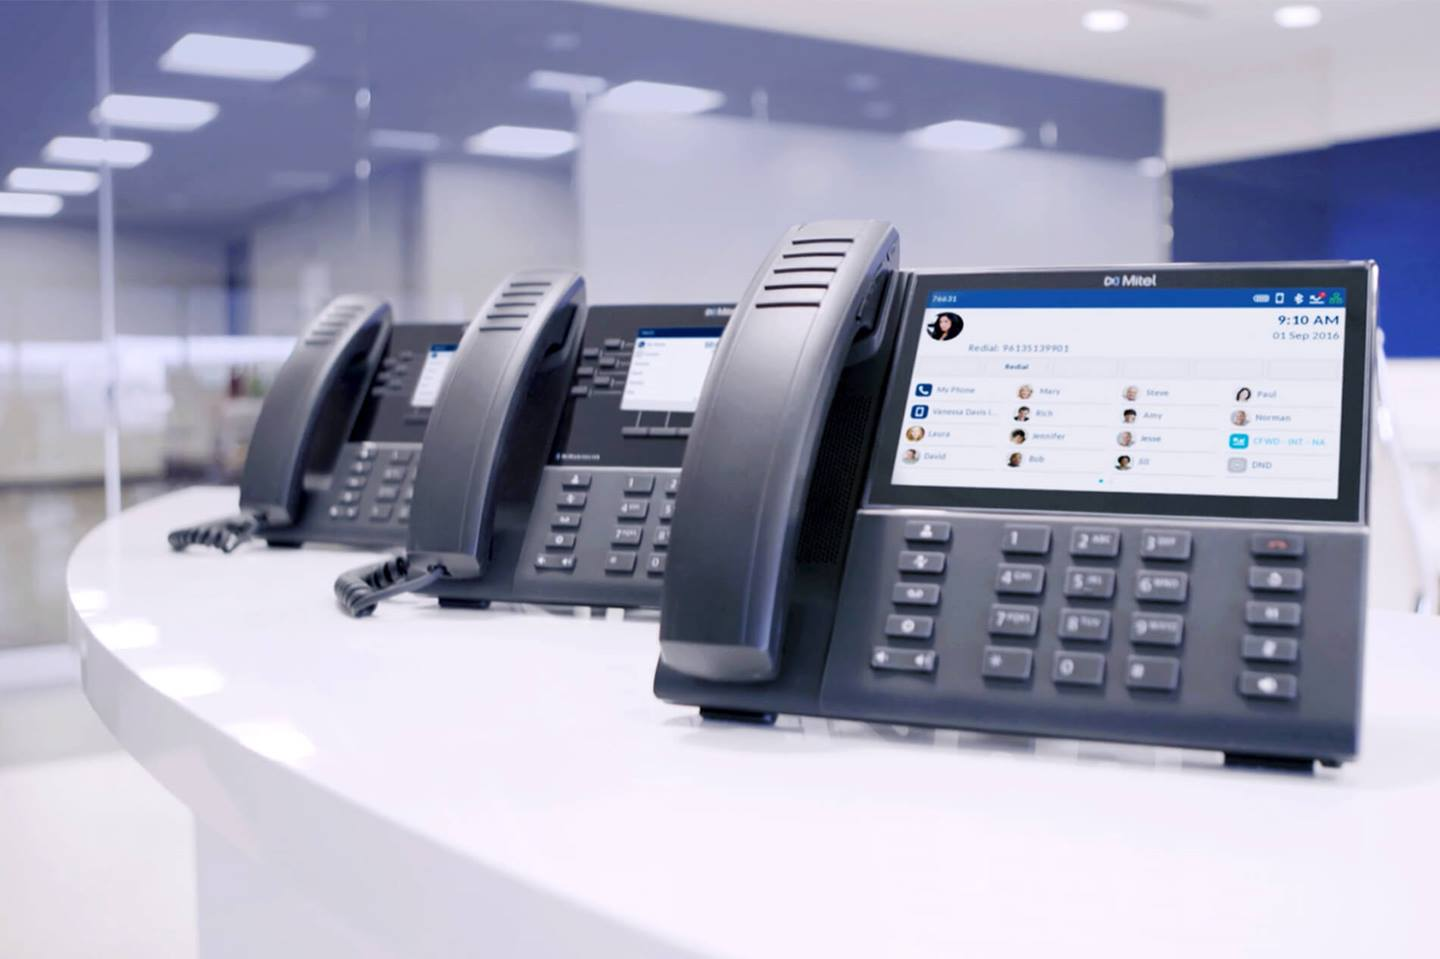 VOICE OVER IP PHONES & PERIPHERALS FOR BUSINESS